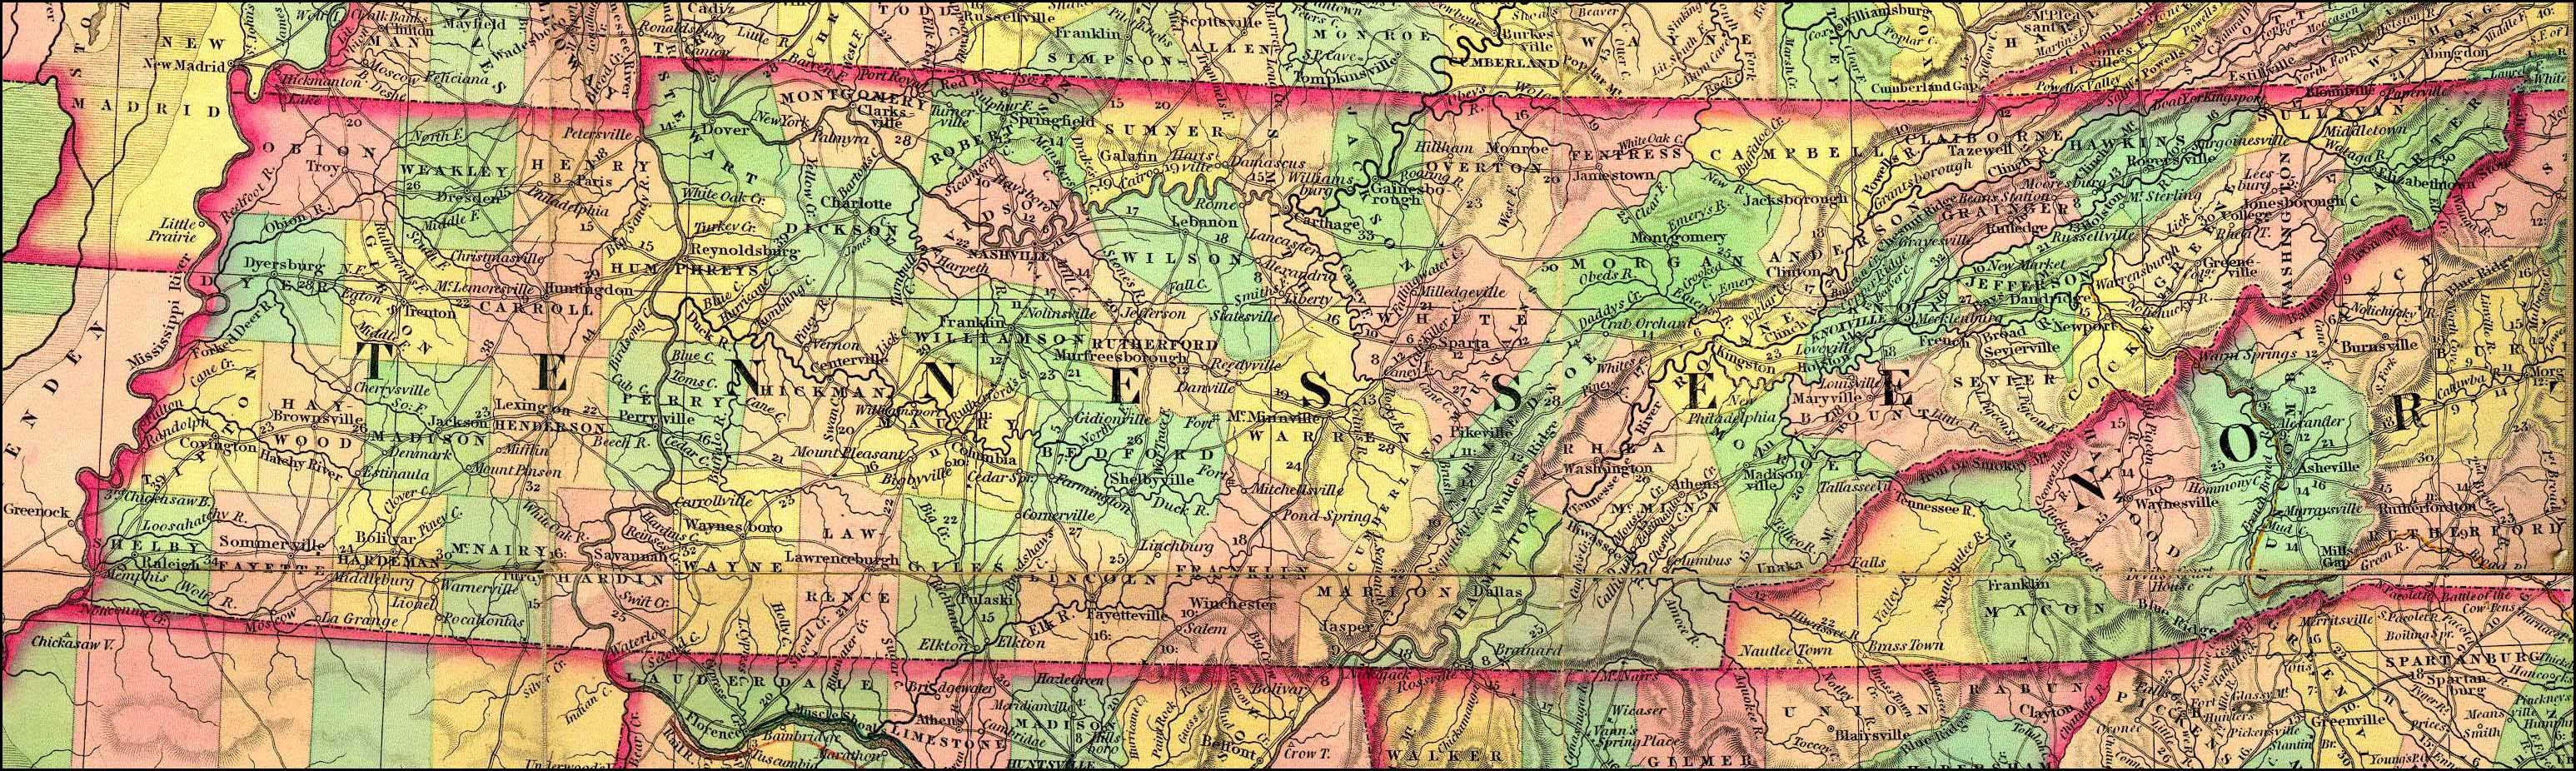 Early Bledsoe County Tn Maps Detailed Tennessee Map  By - Detailed map of us states